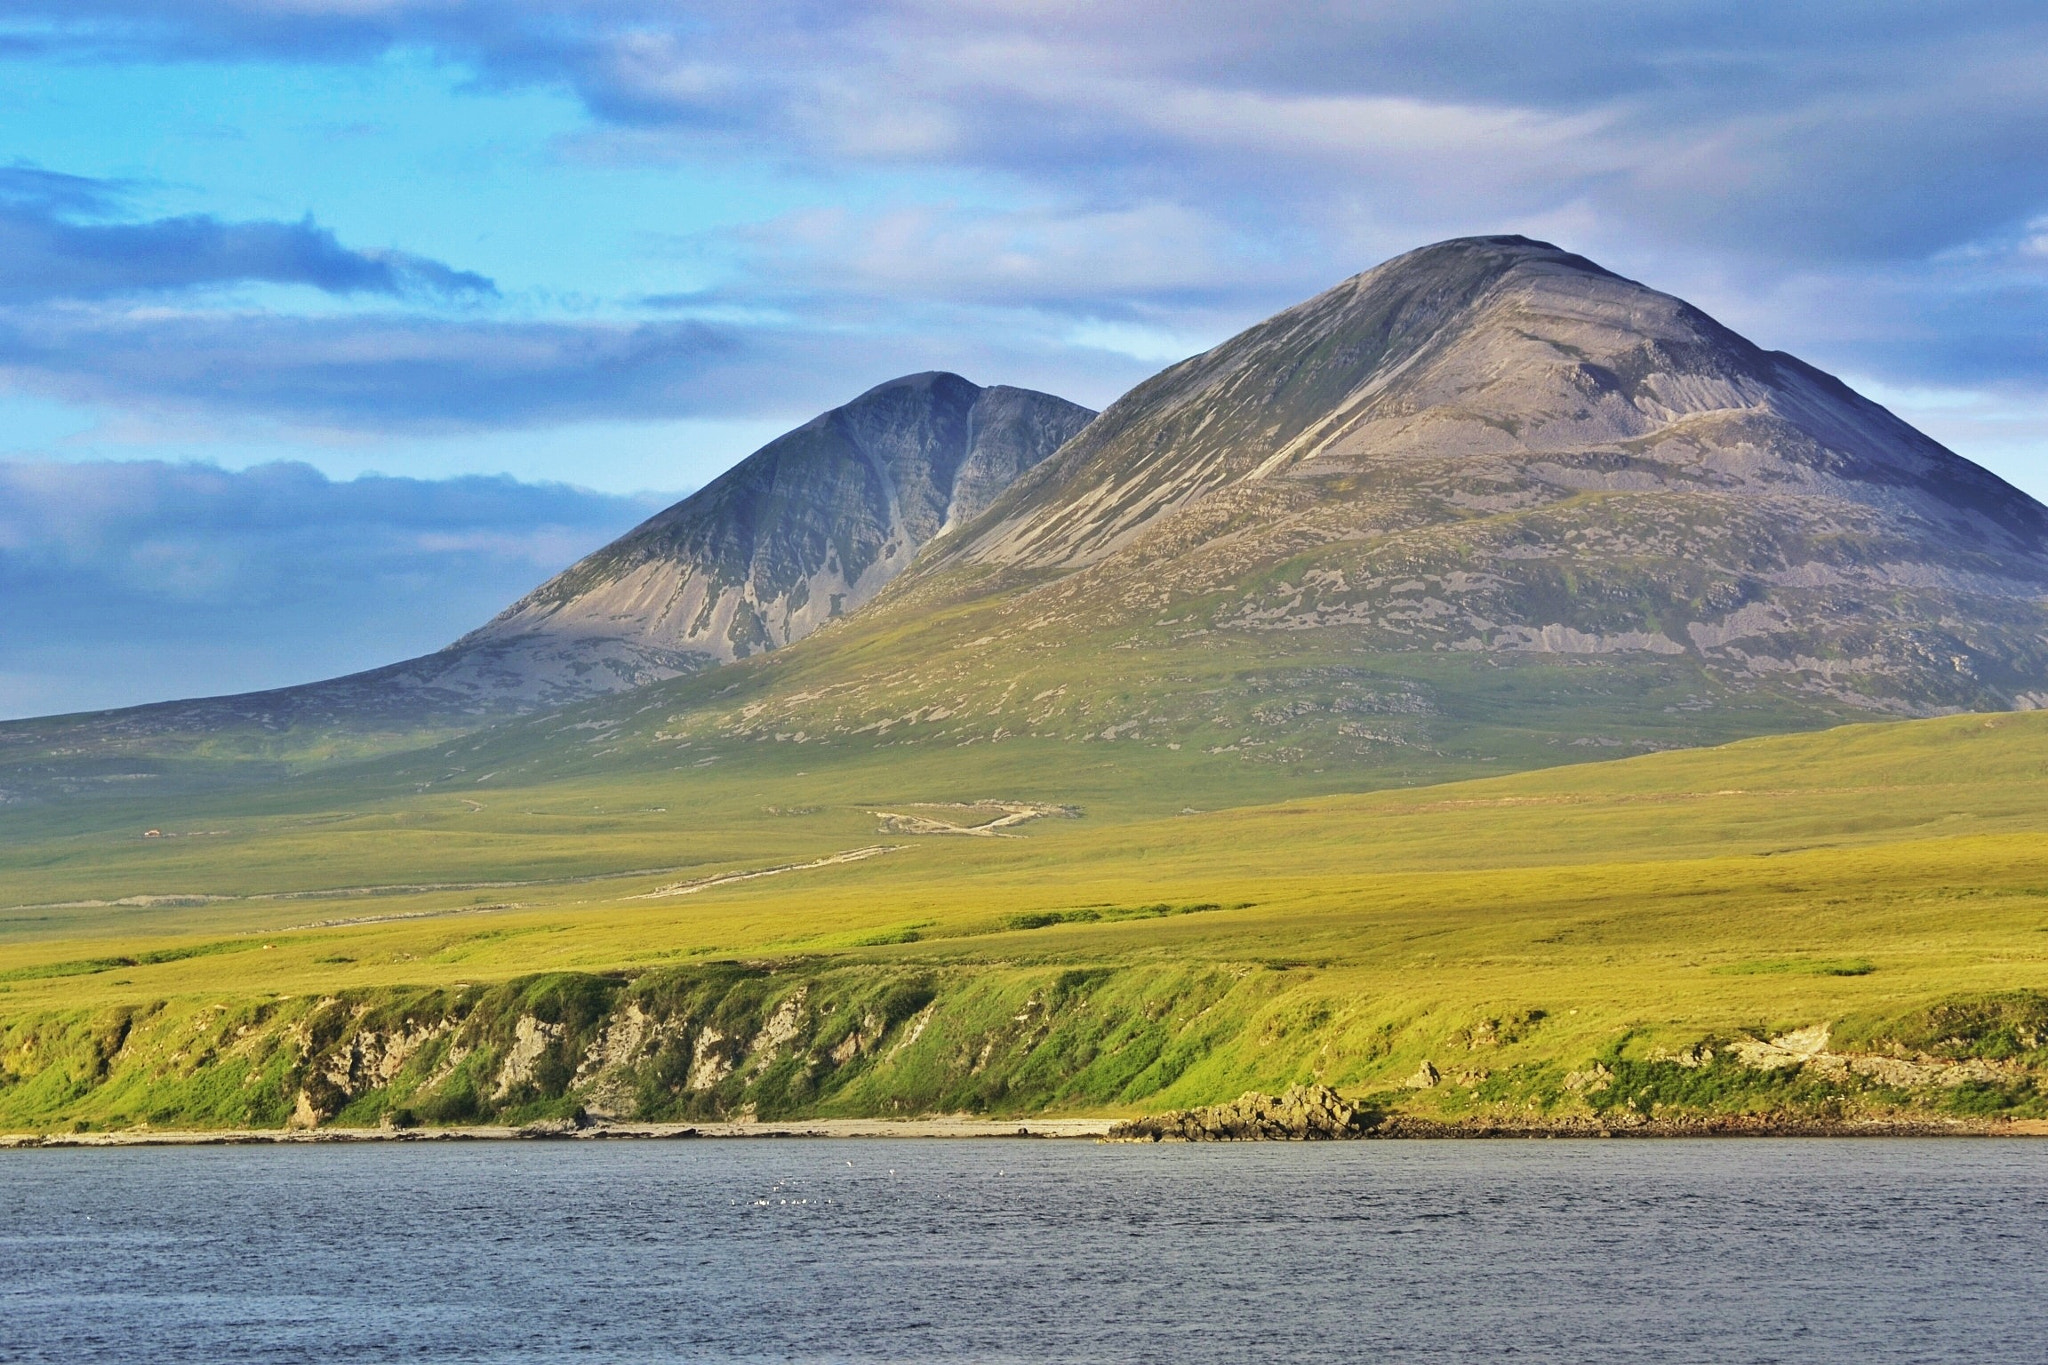 Photograph The glorious Isle of Jura  by Sarah johnson on 500px